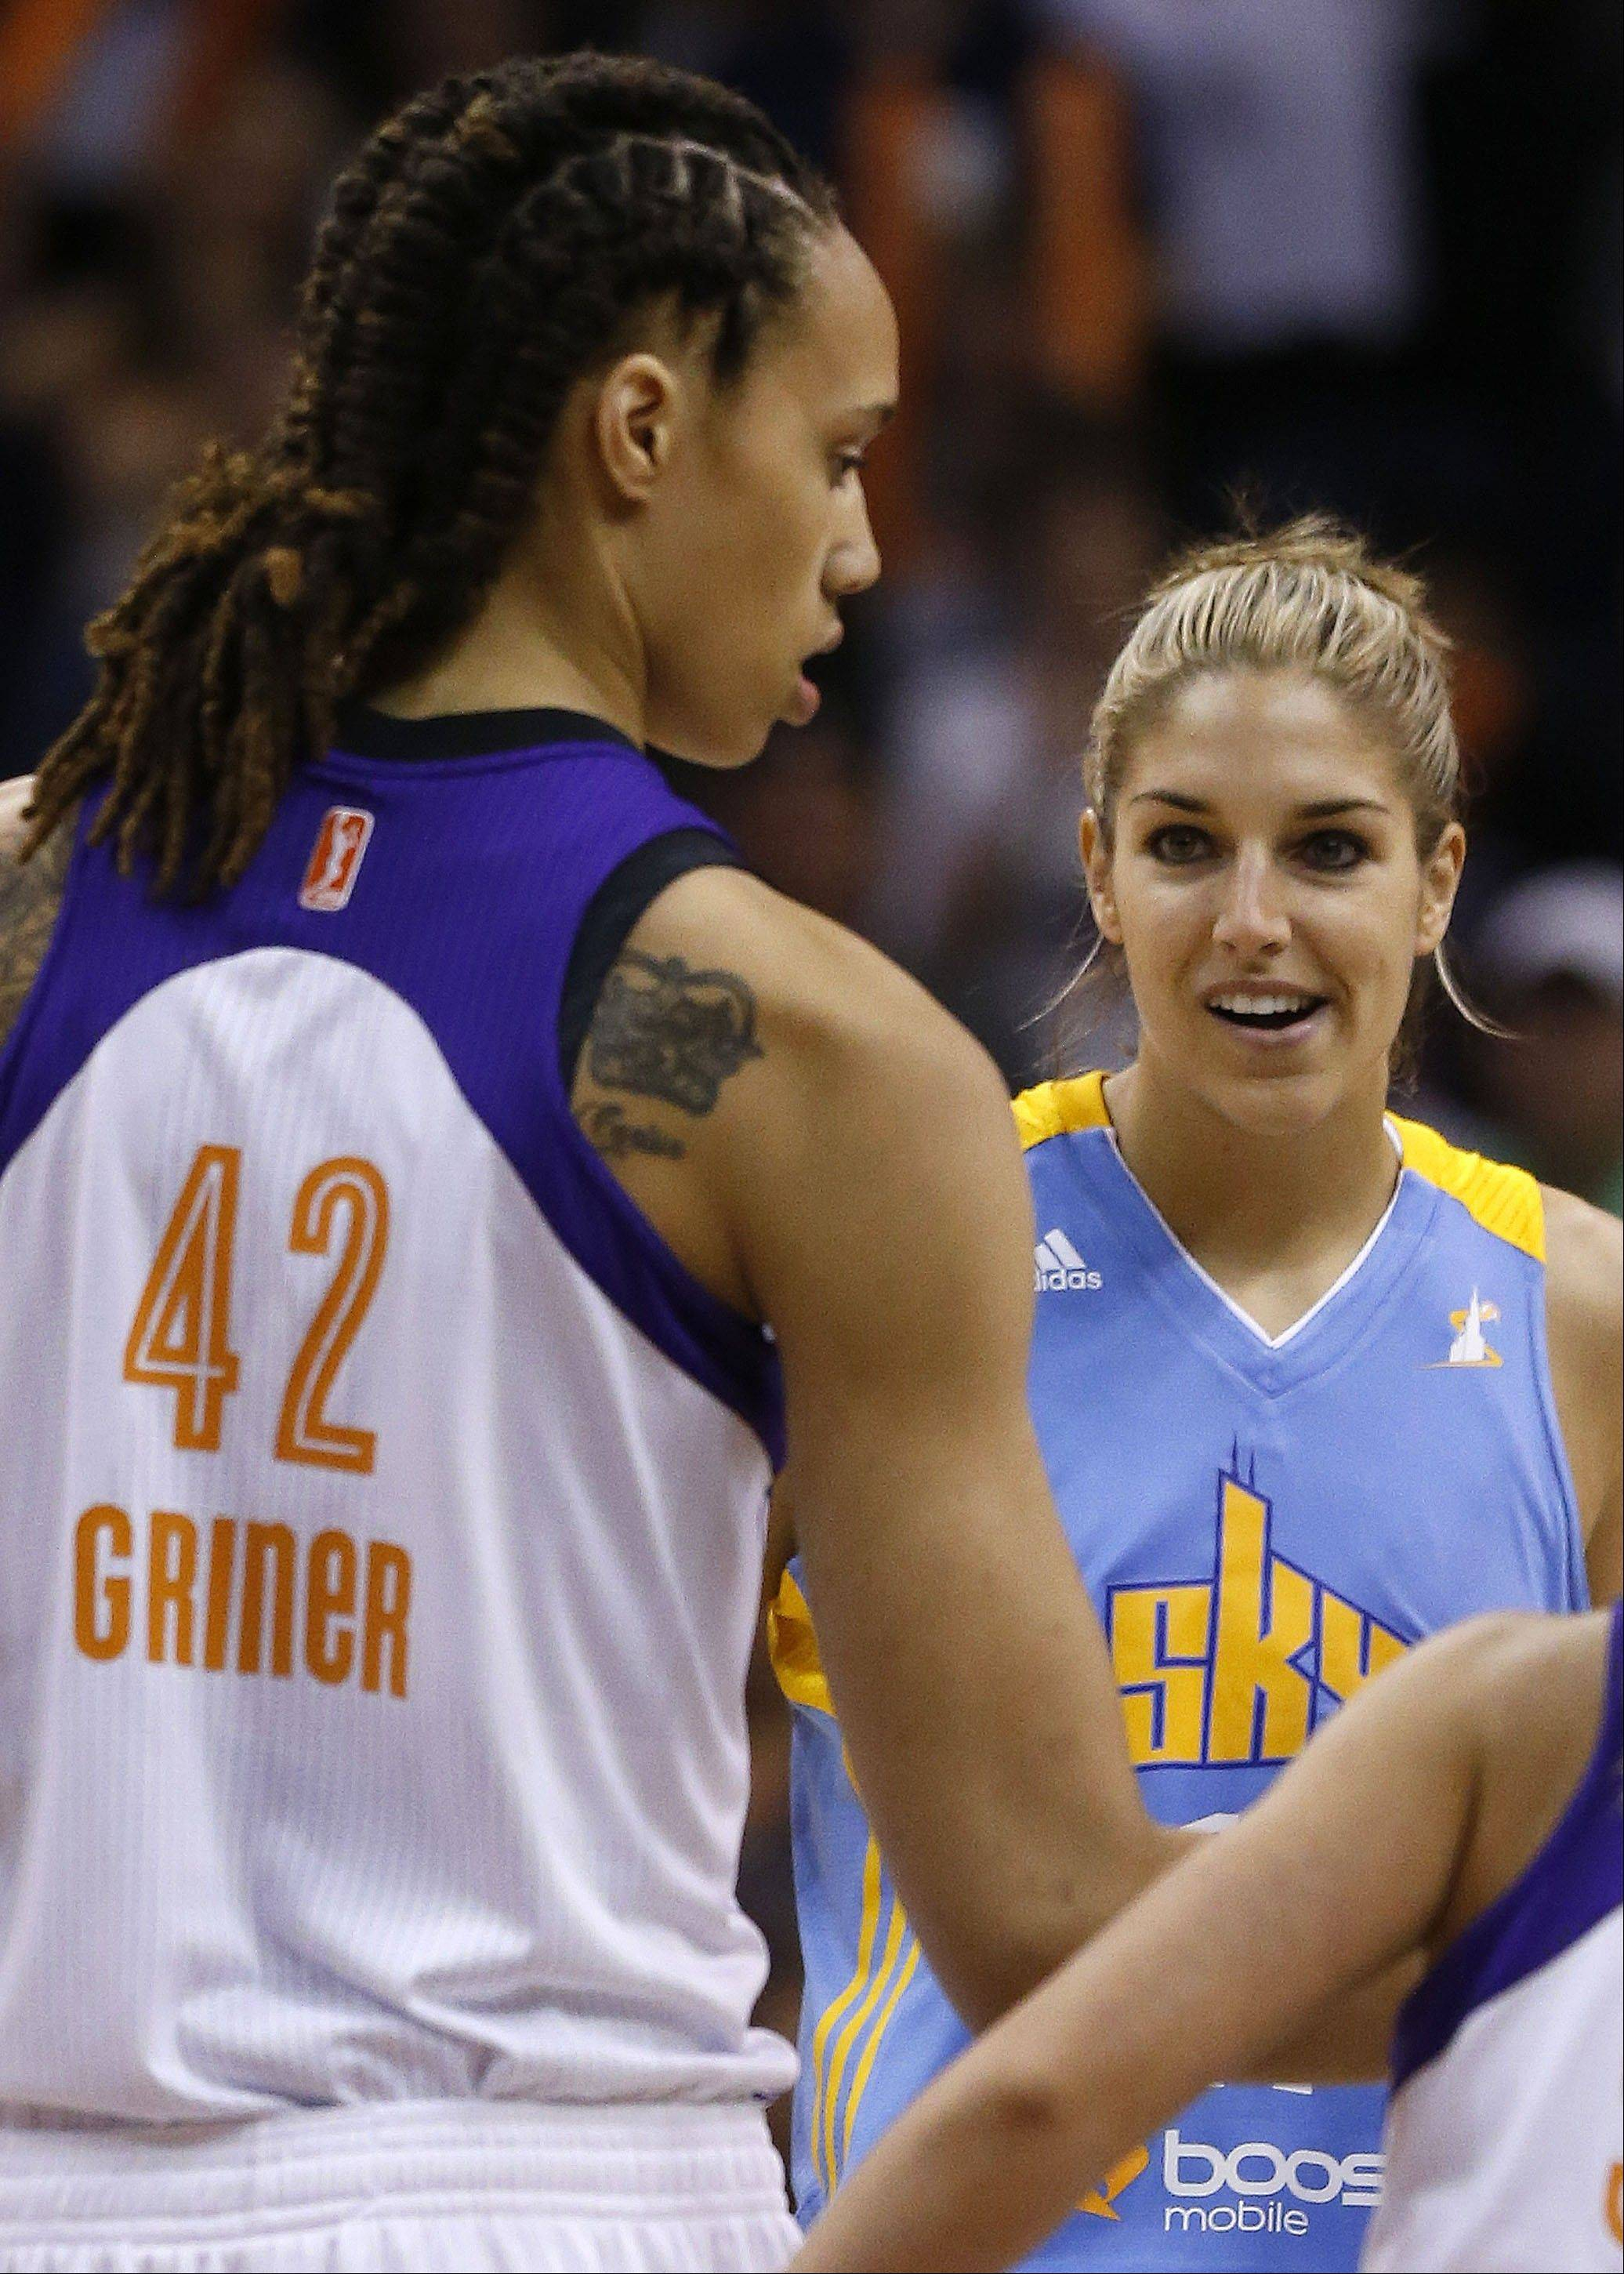 While Brittney Griner had a rough debut, Chicago Sky's Elena Delle Donne scored 22 points in her first WNBA game and led the team in minutes played while grabbing 8 rebounds and also blocking 4 shots.